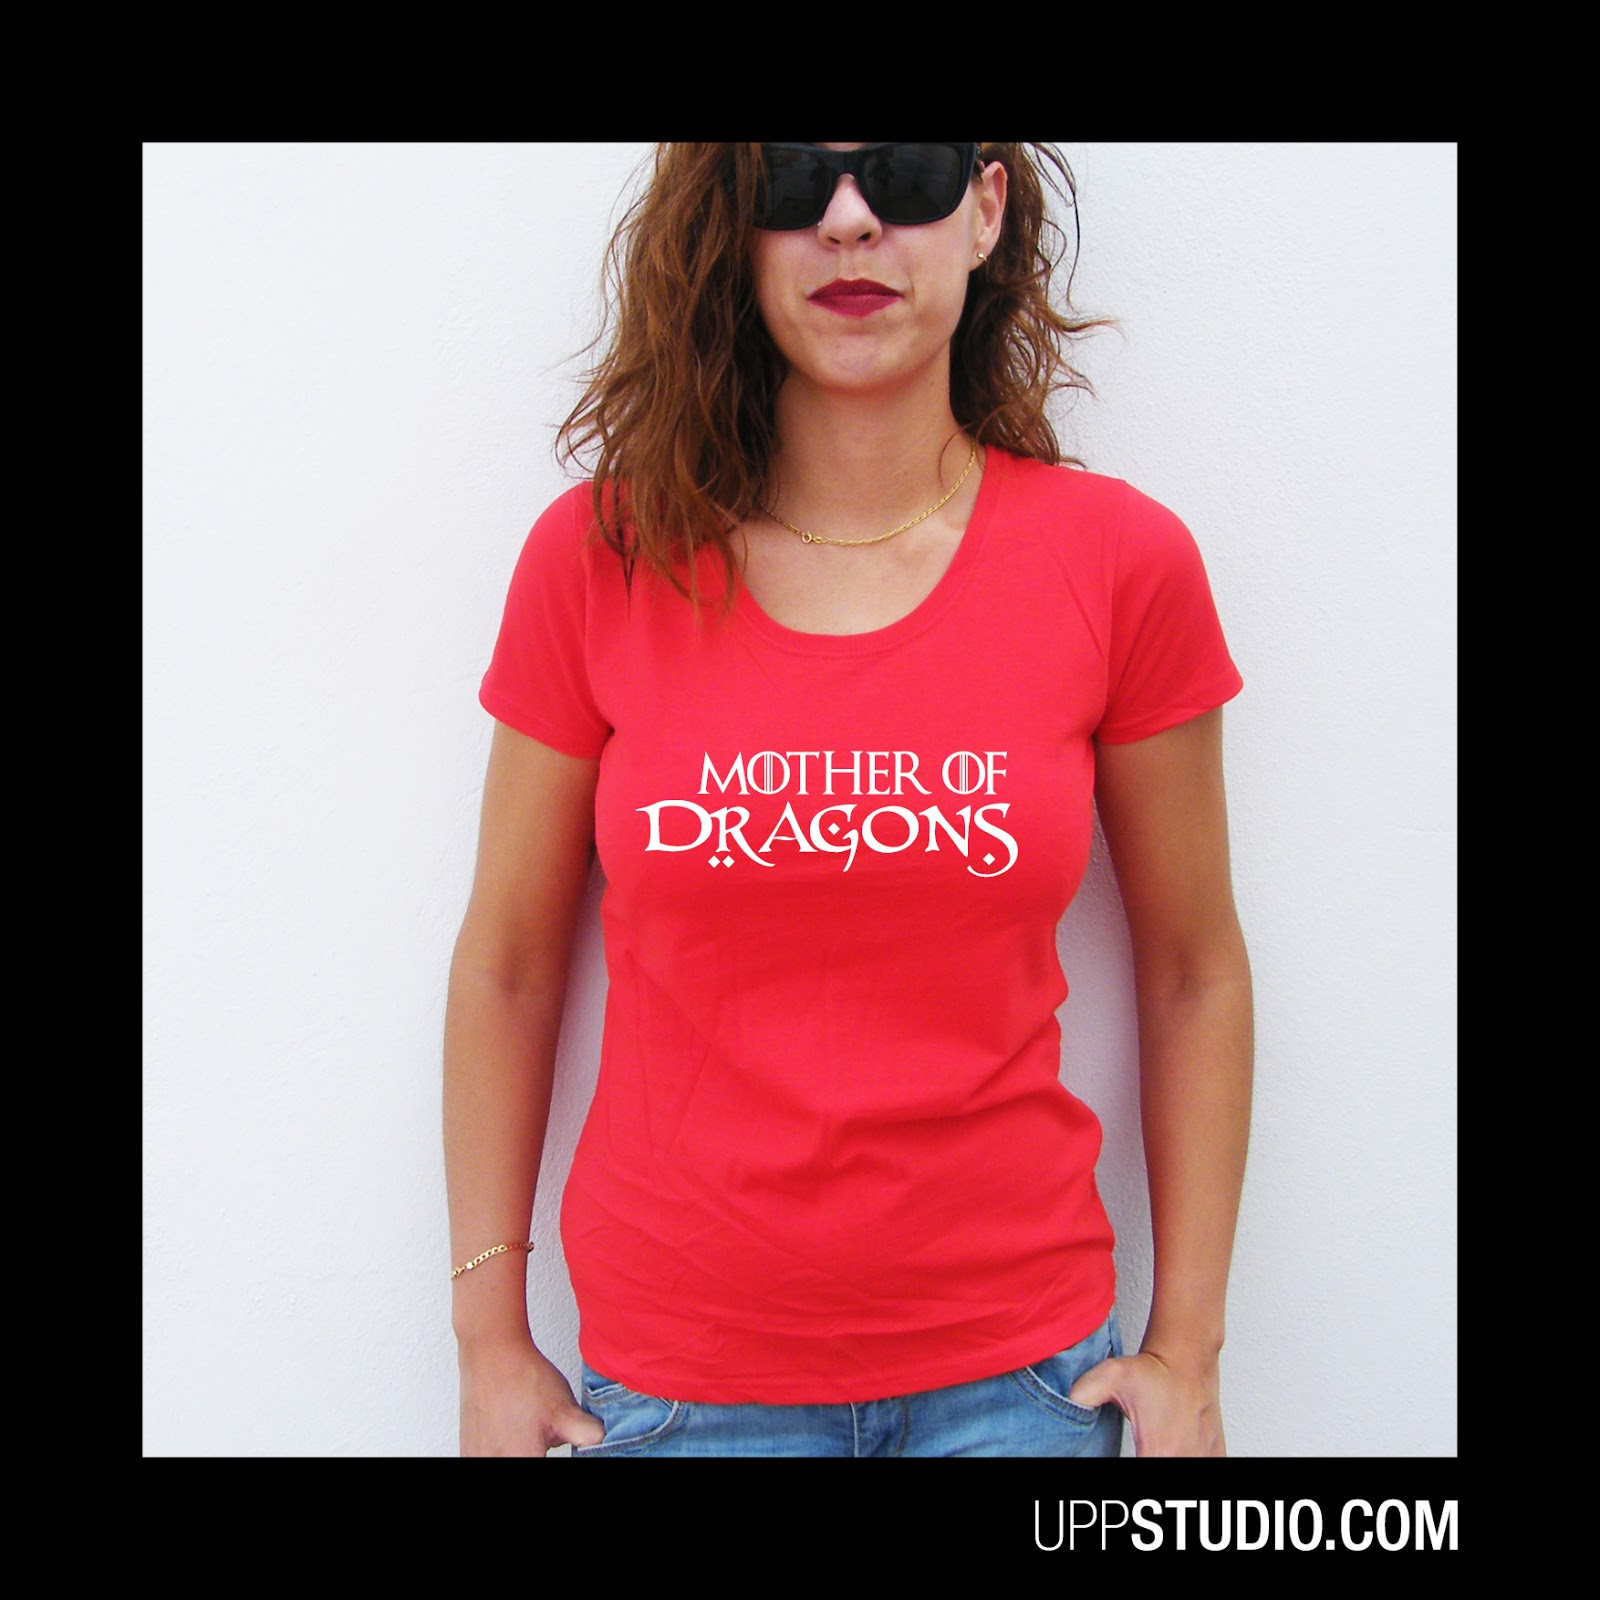 http://www.uppstudio.com/Camiseta-Mother-Of-Dragons-Juego-De-Tronos?utm_source=SPEC&utm_medium=Blog&utm_campaign=GOTSPEC&utm_term=GOTSPEC